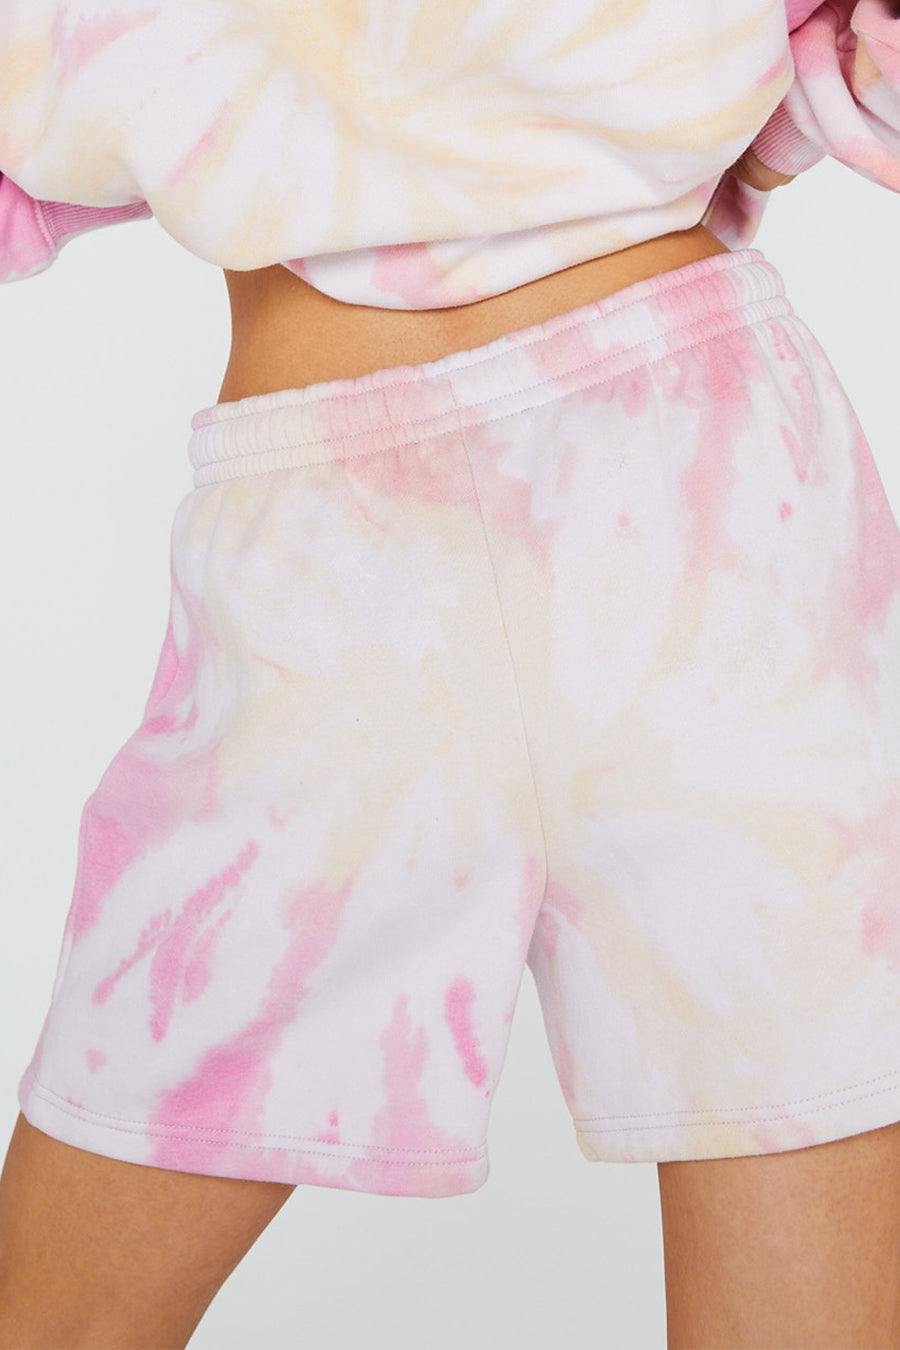 SWEET HEART TIE DYE SHORTS